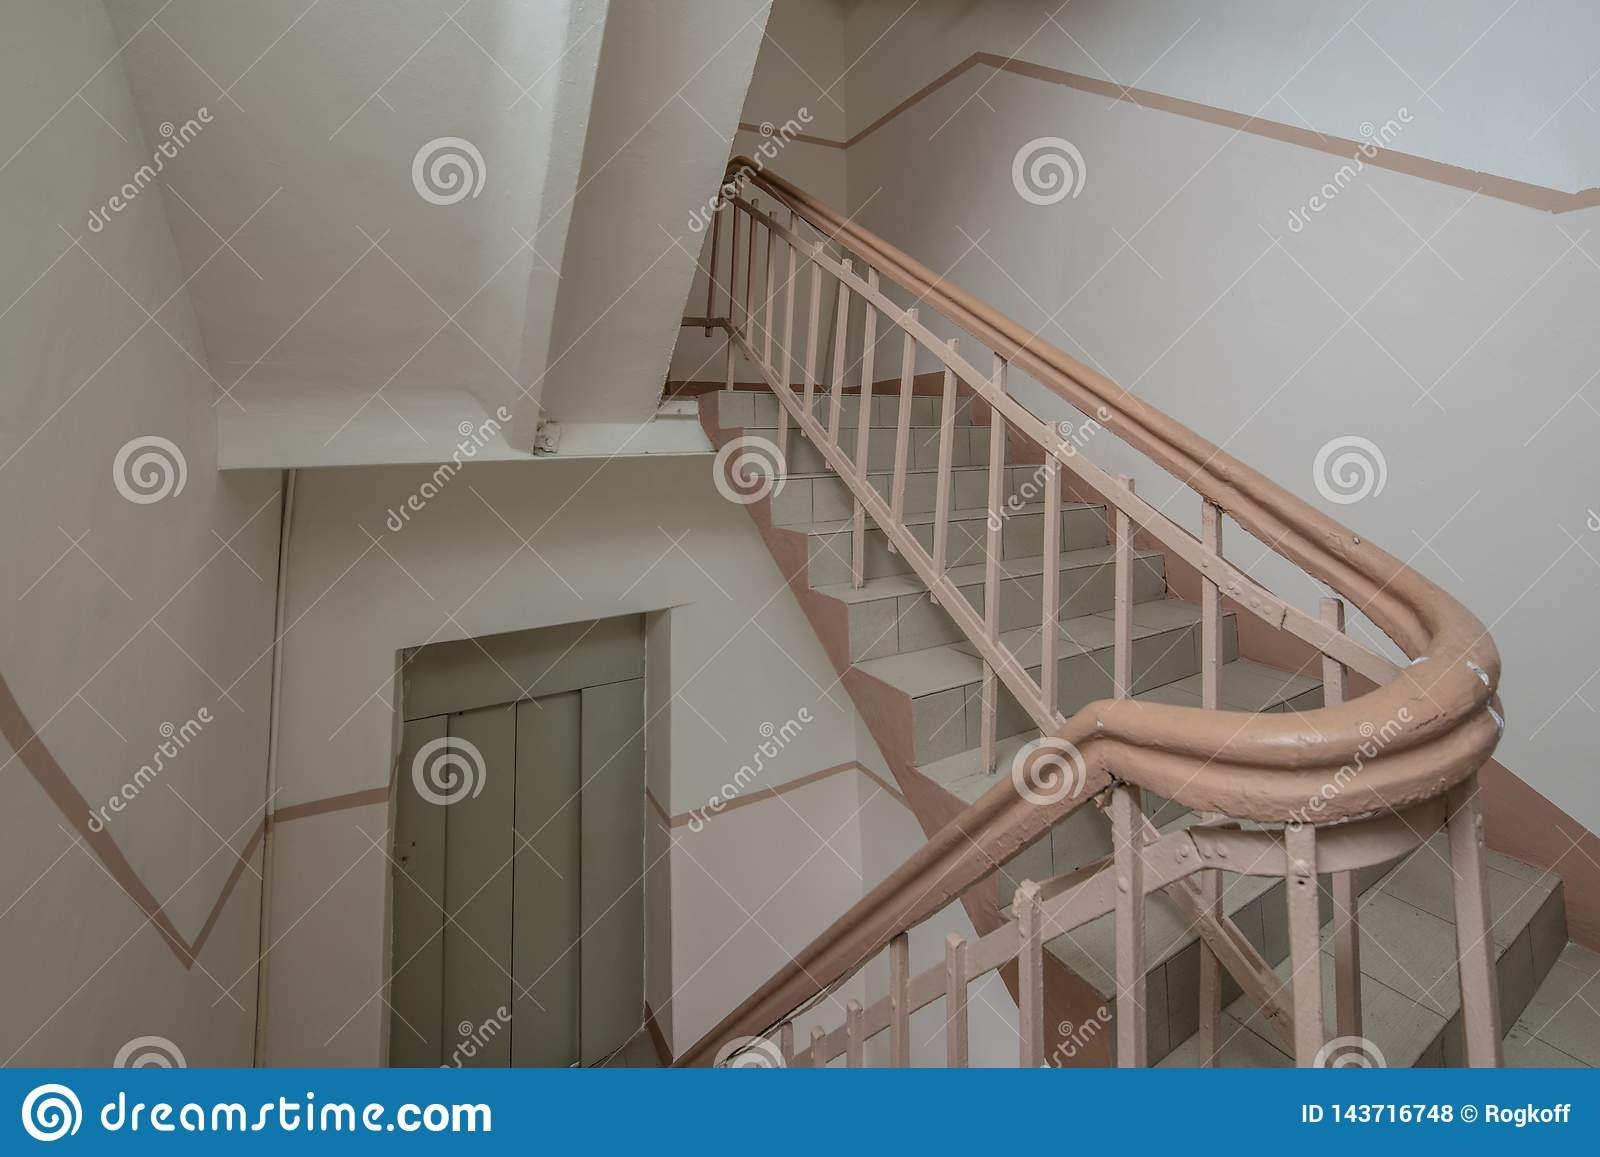 Old Staircase In The Stairwell With Wooden Railing And Wrought | Wrought Iron And Wood Railing | Iron Baluster | Rustic | Split Foyer | Horizontal | Banister